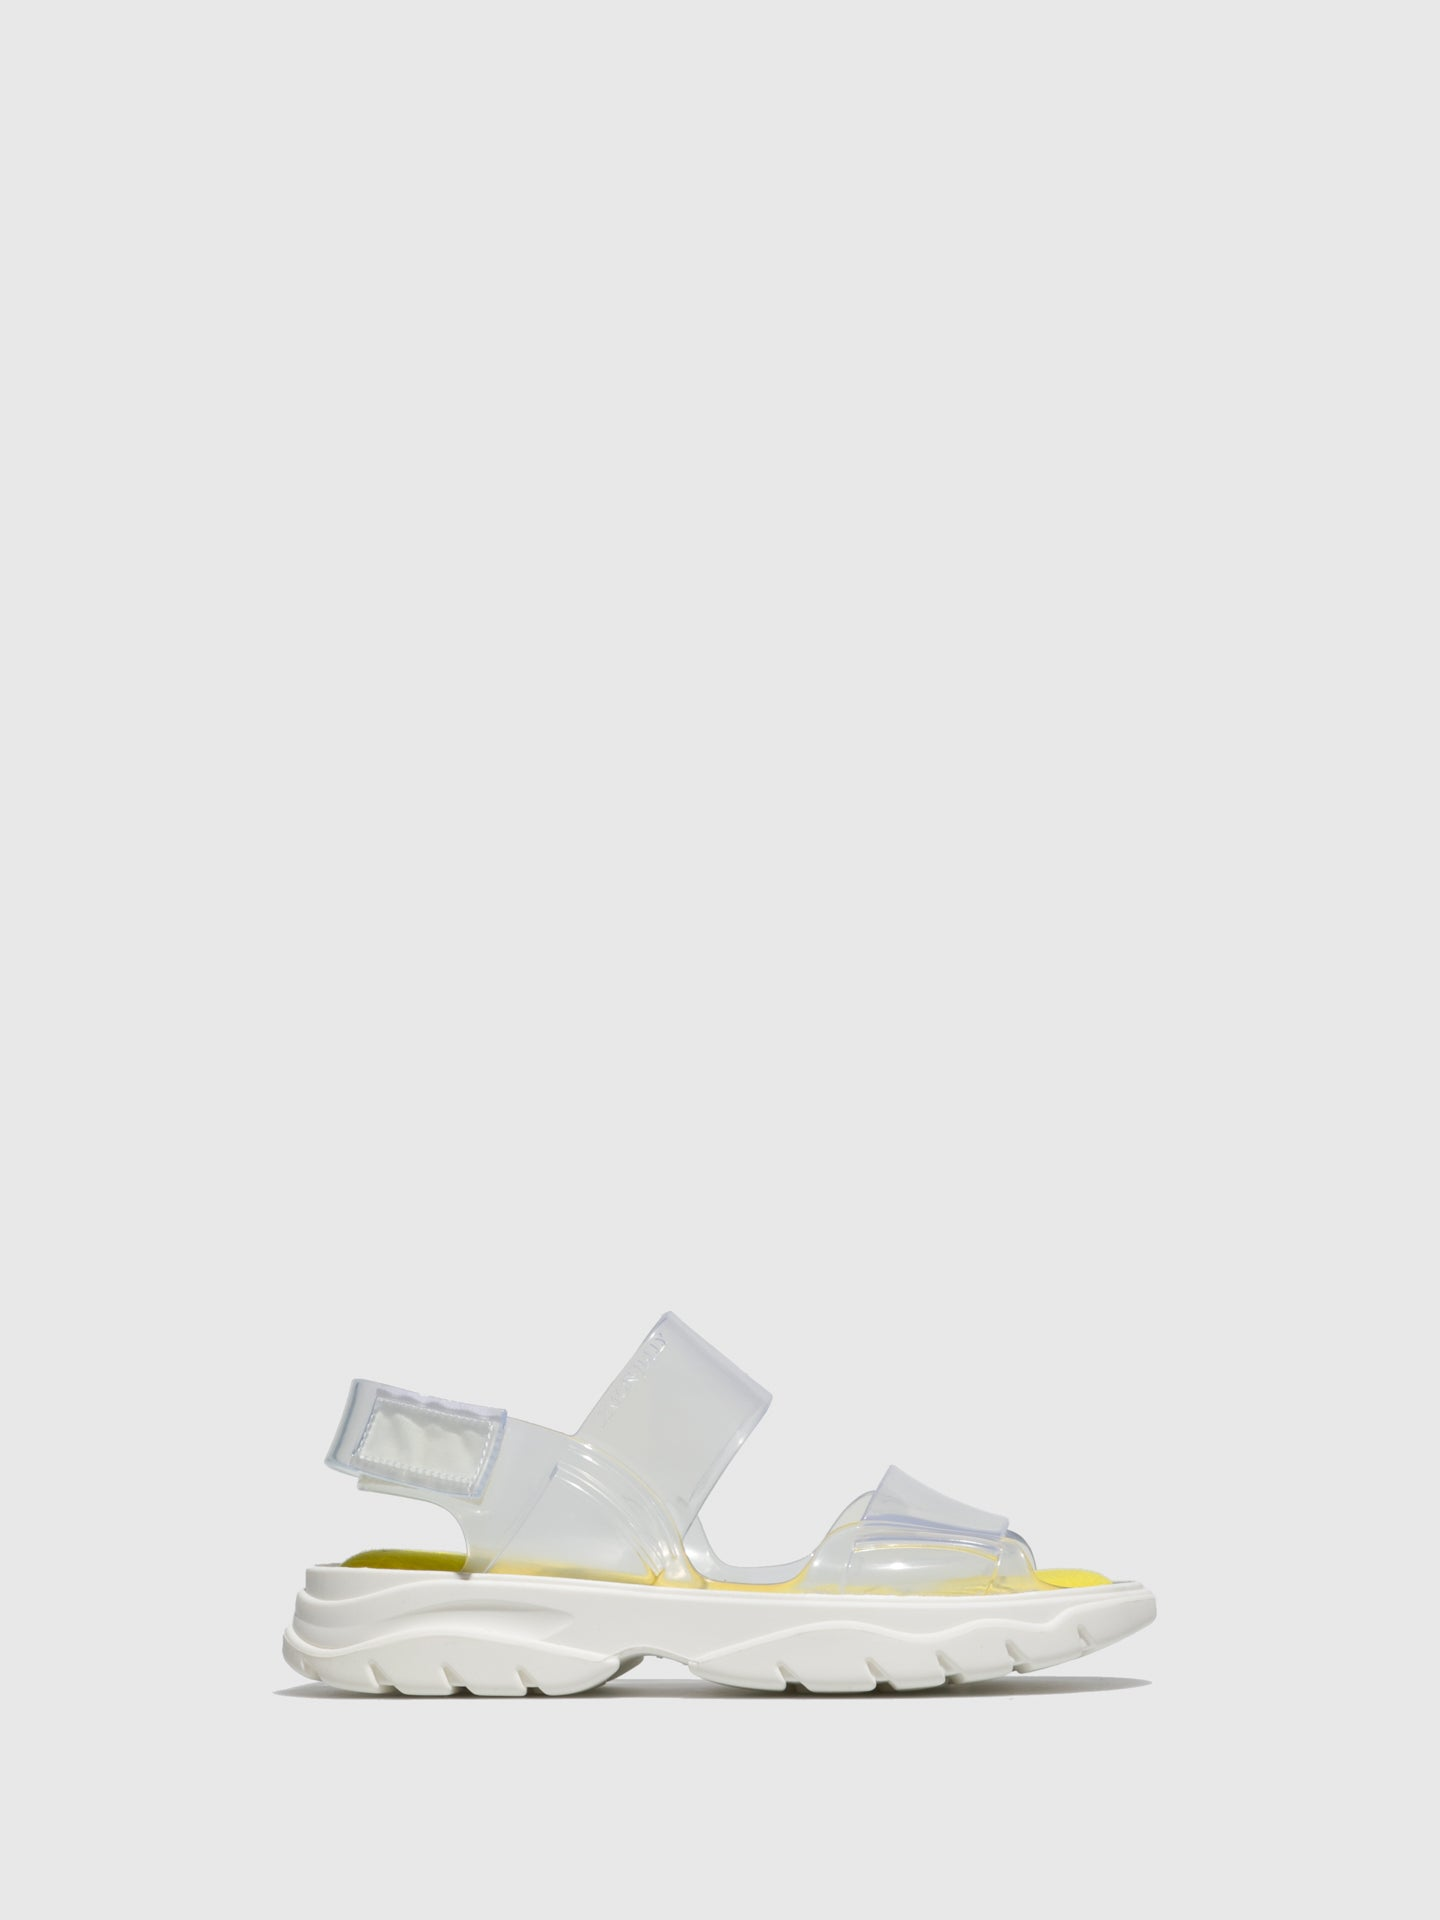 Lemon Jelly White Transparent Rubber Sandals